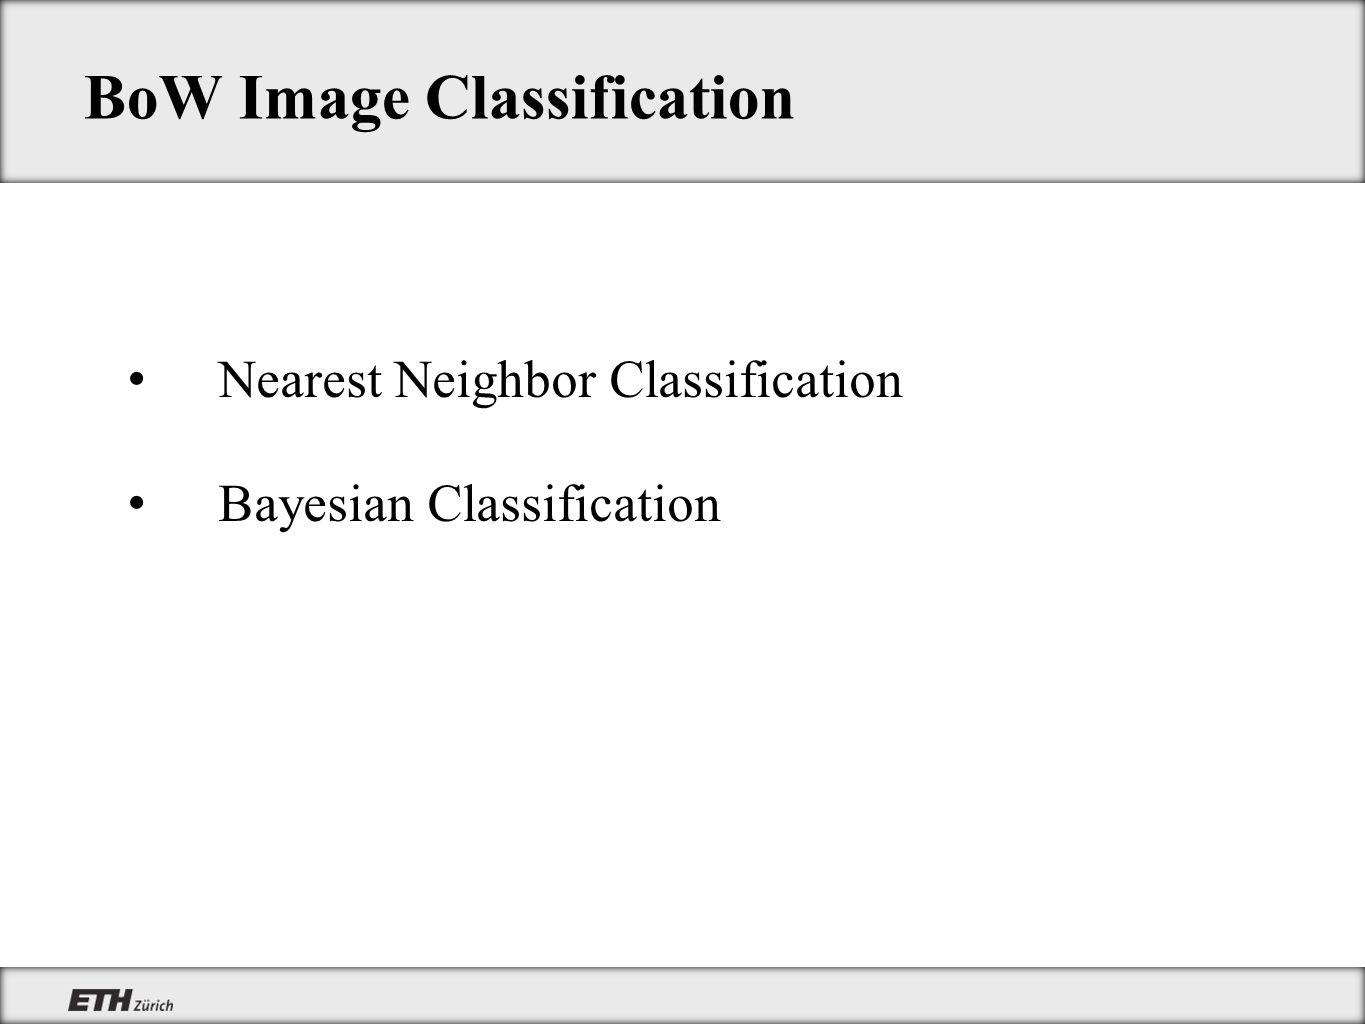 BoW Image Classification